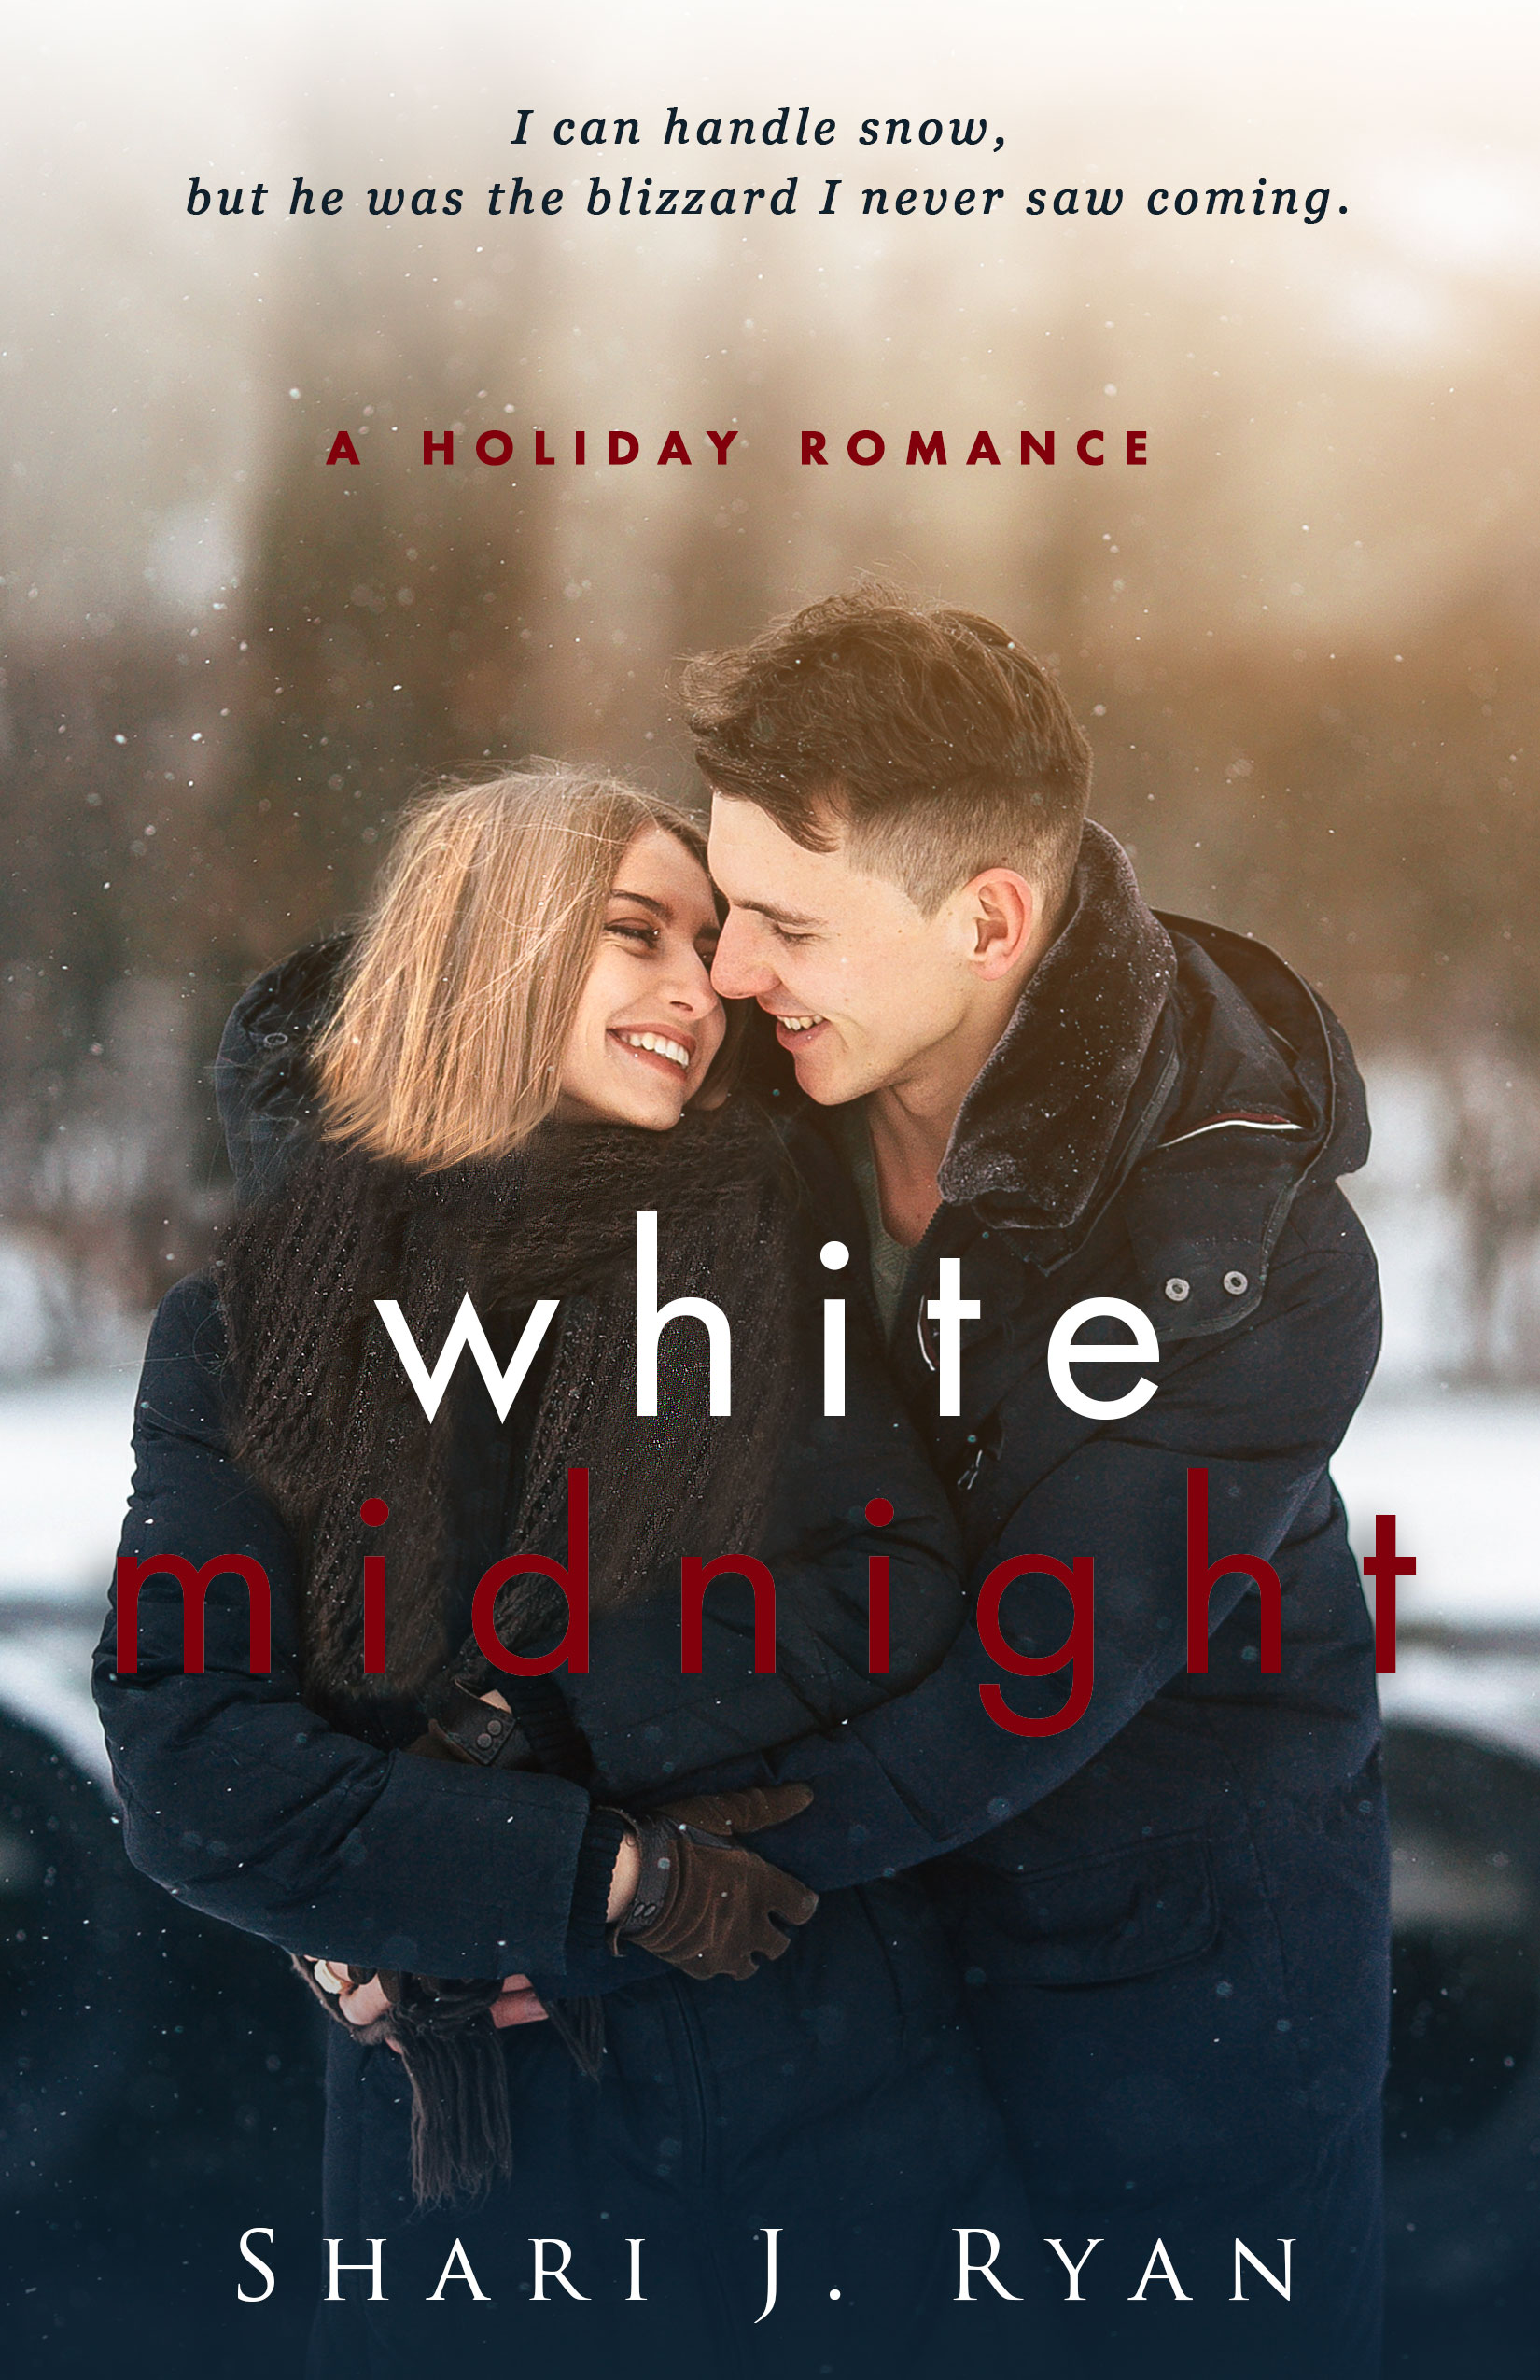 Cozy love - White Midnight is on sale for only 99 cents, so if you want something to warm up to, it's a sweet romance. Grab it!